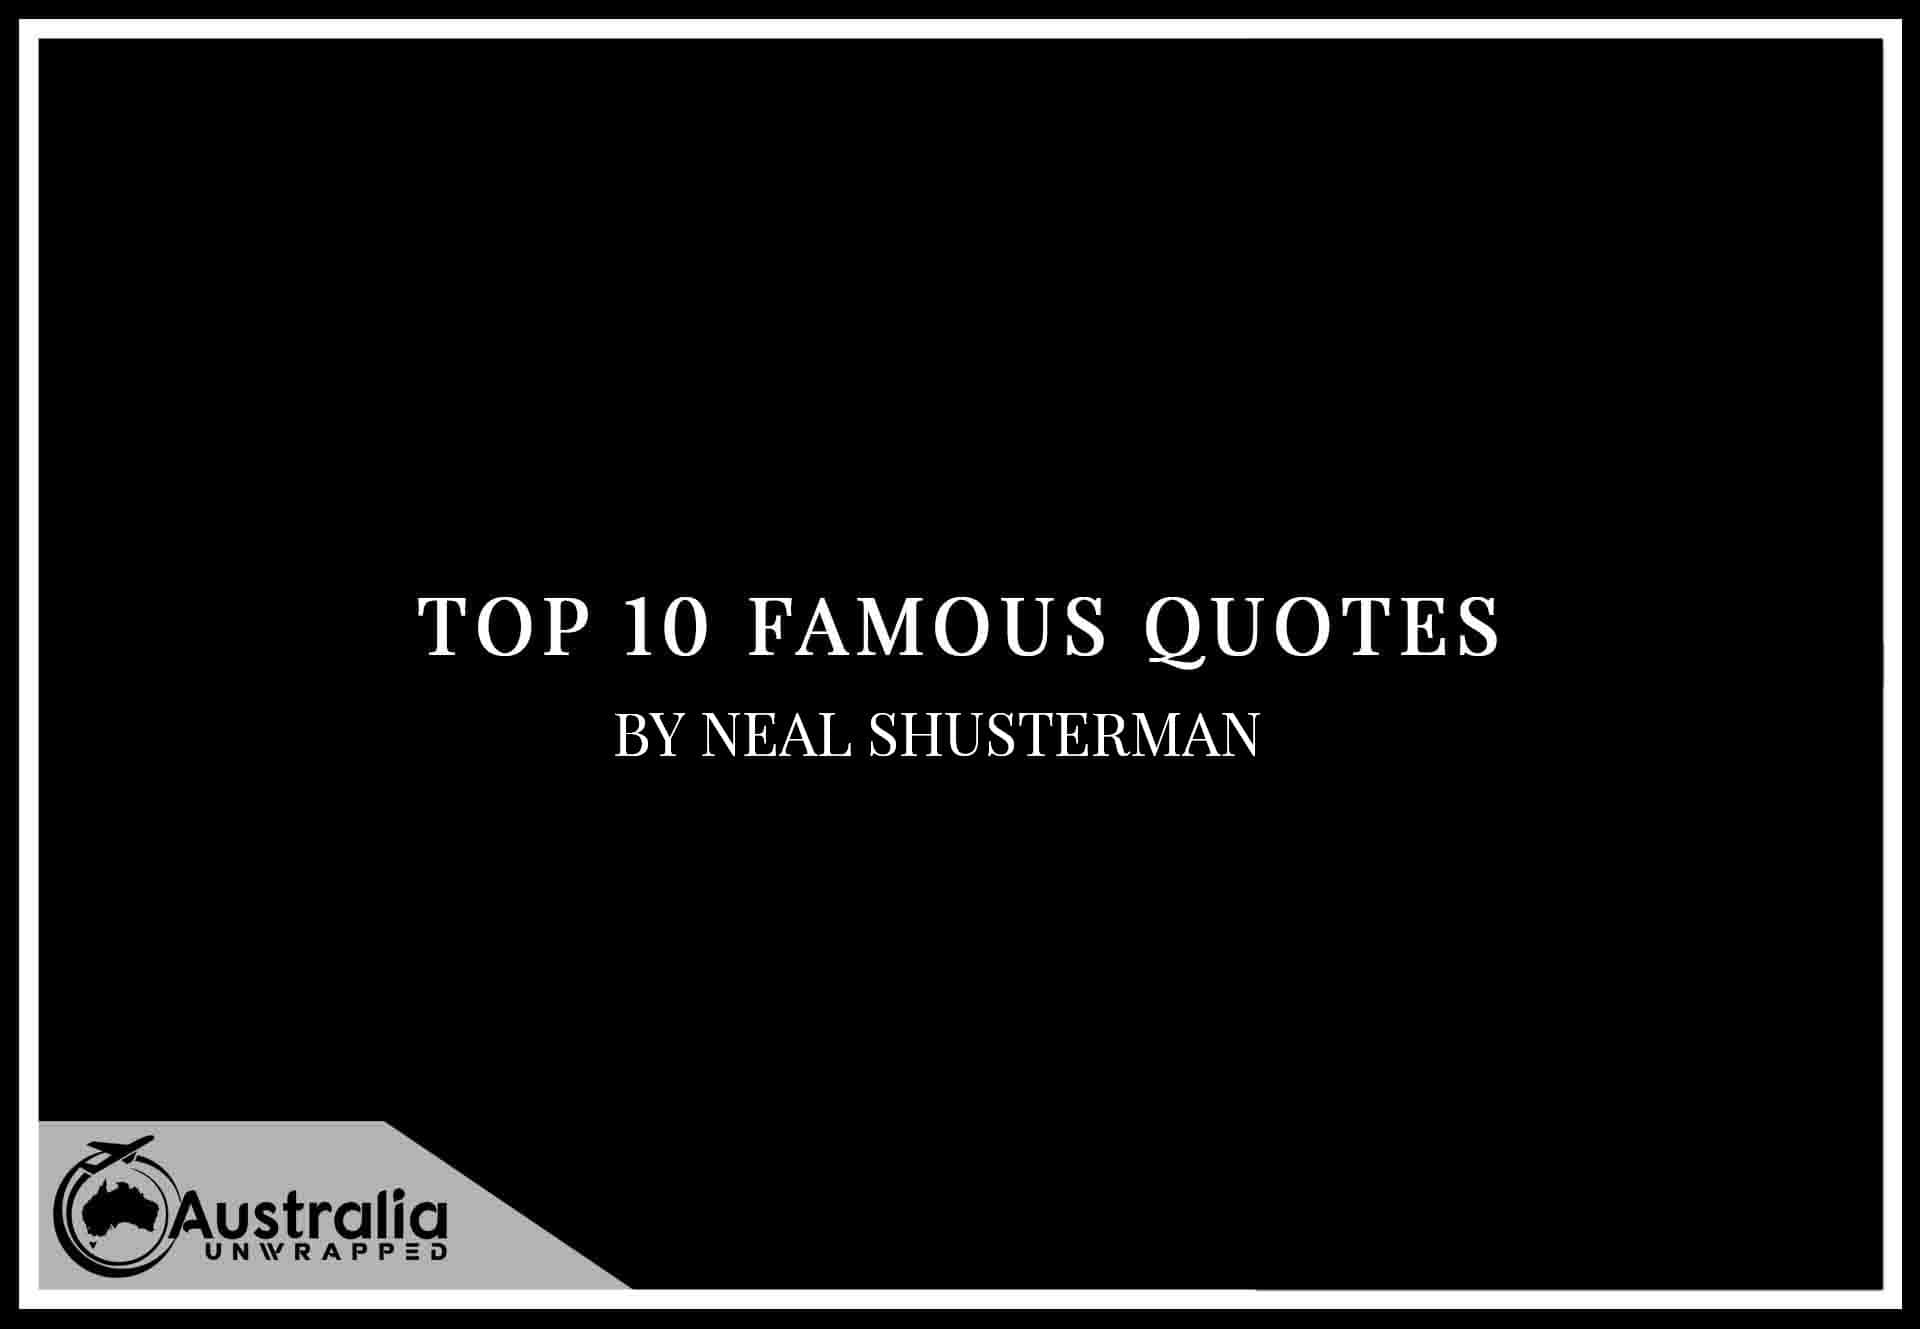 Top 10 Famous Quotes by Author Neal Shusterman